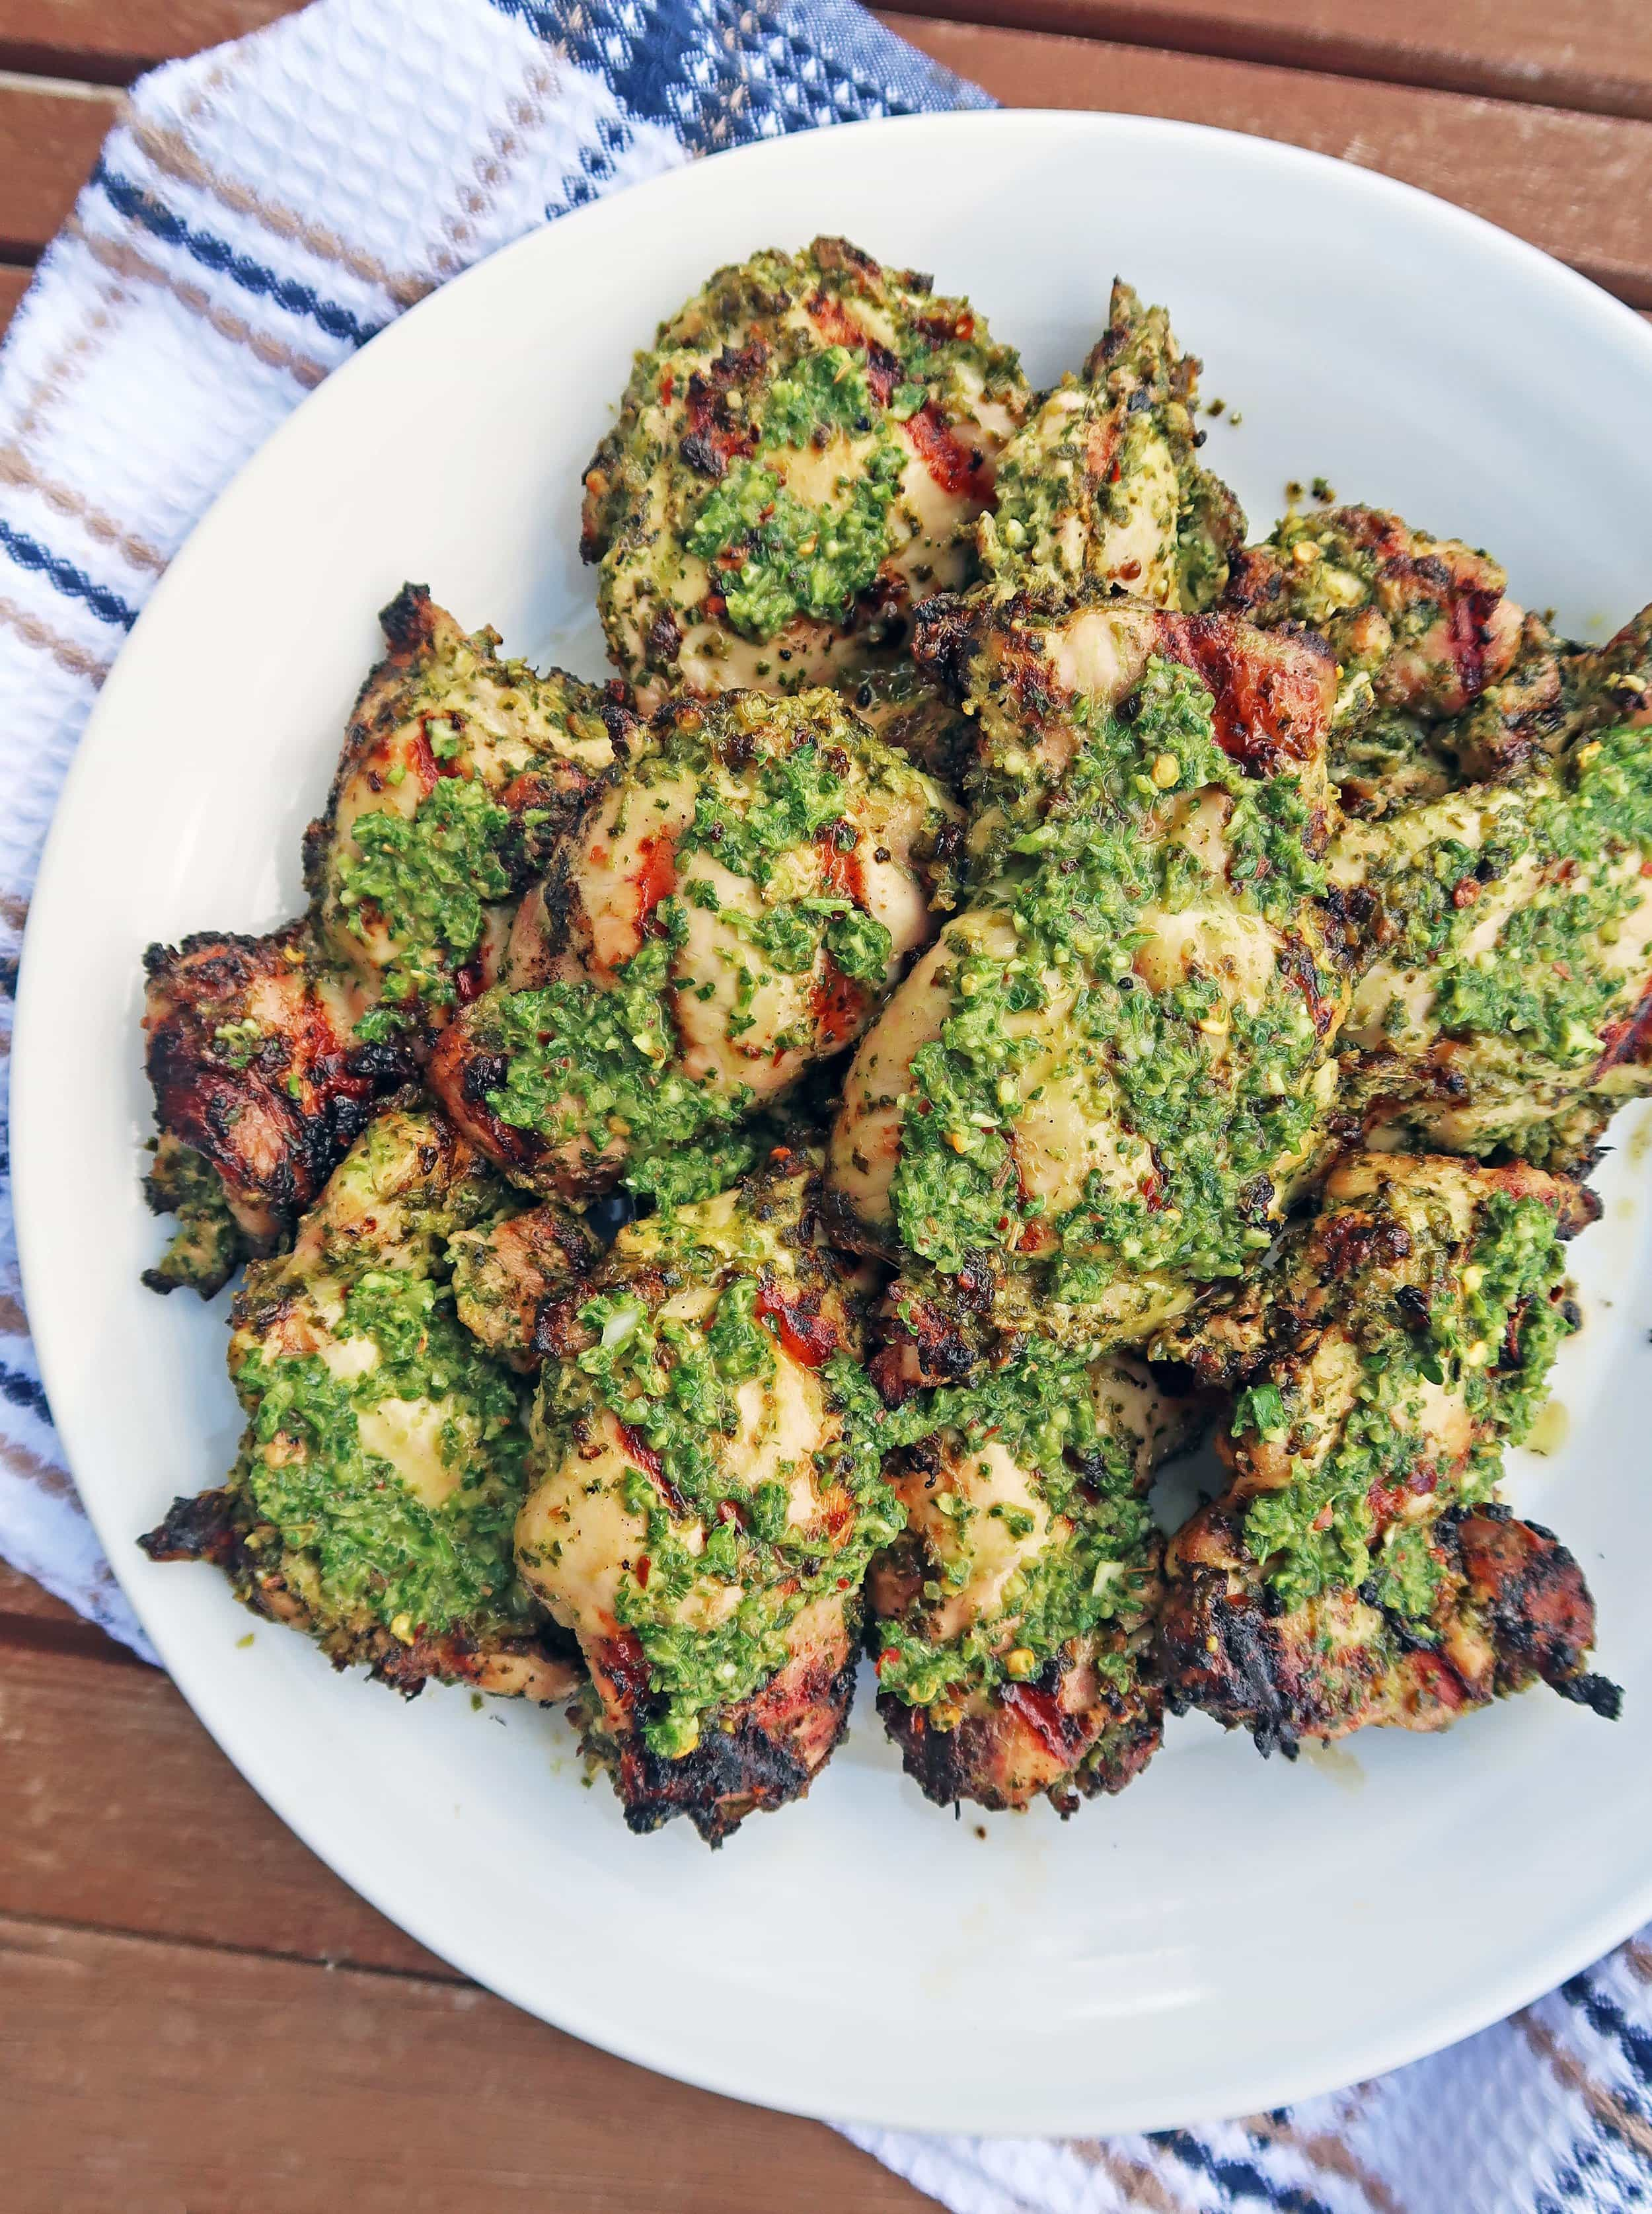 Grilled Chicken Thighs with Chimichurri Sauce